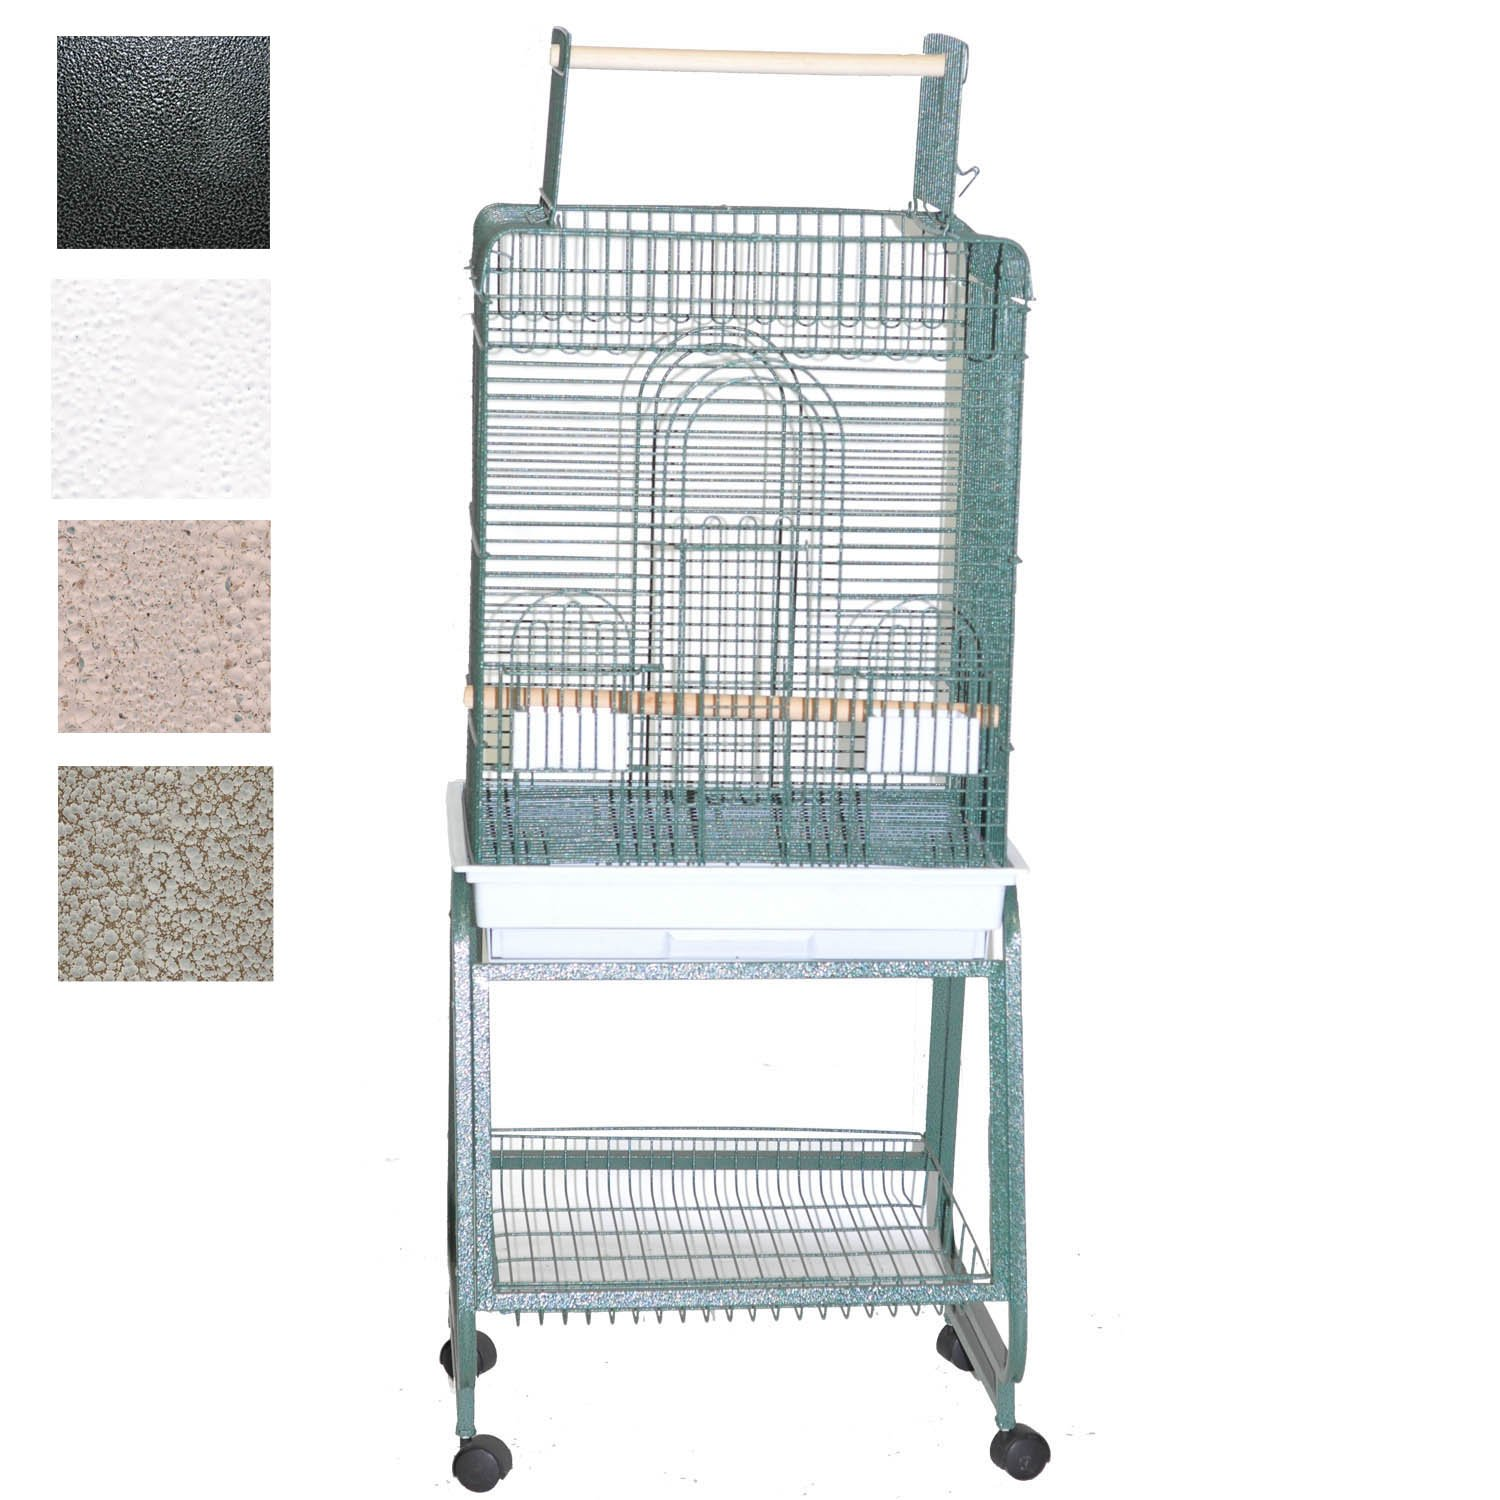 AE Cage Company Play Top Bird Cage with Removable Stand 22 L X 18 W X 62 H Black Small